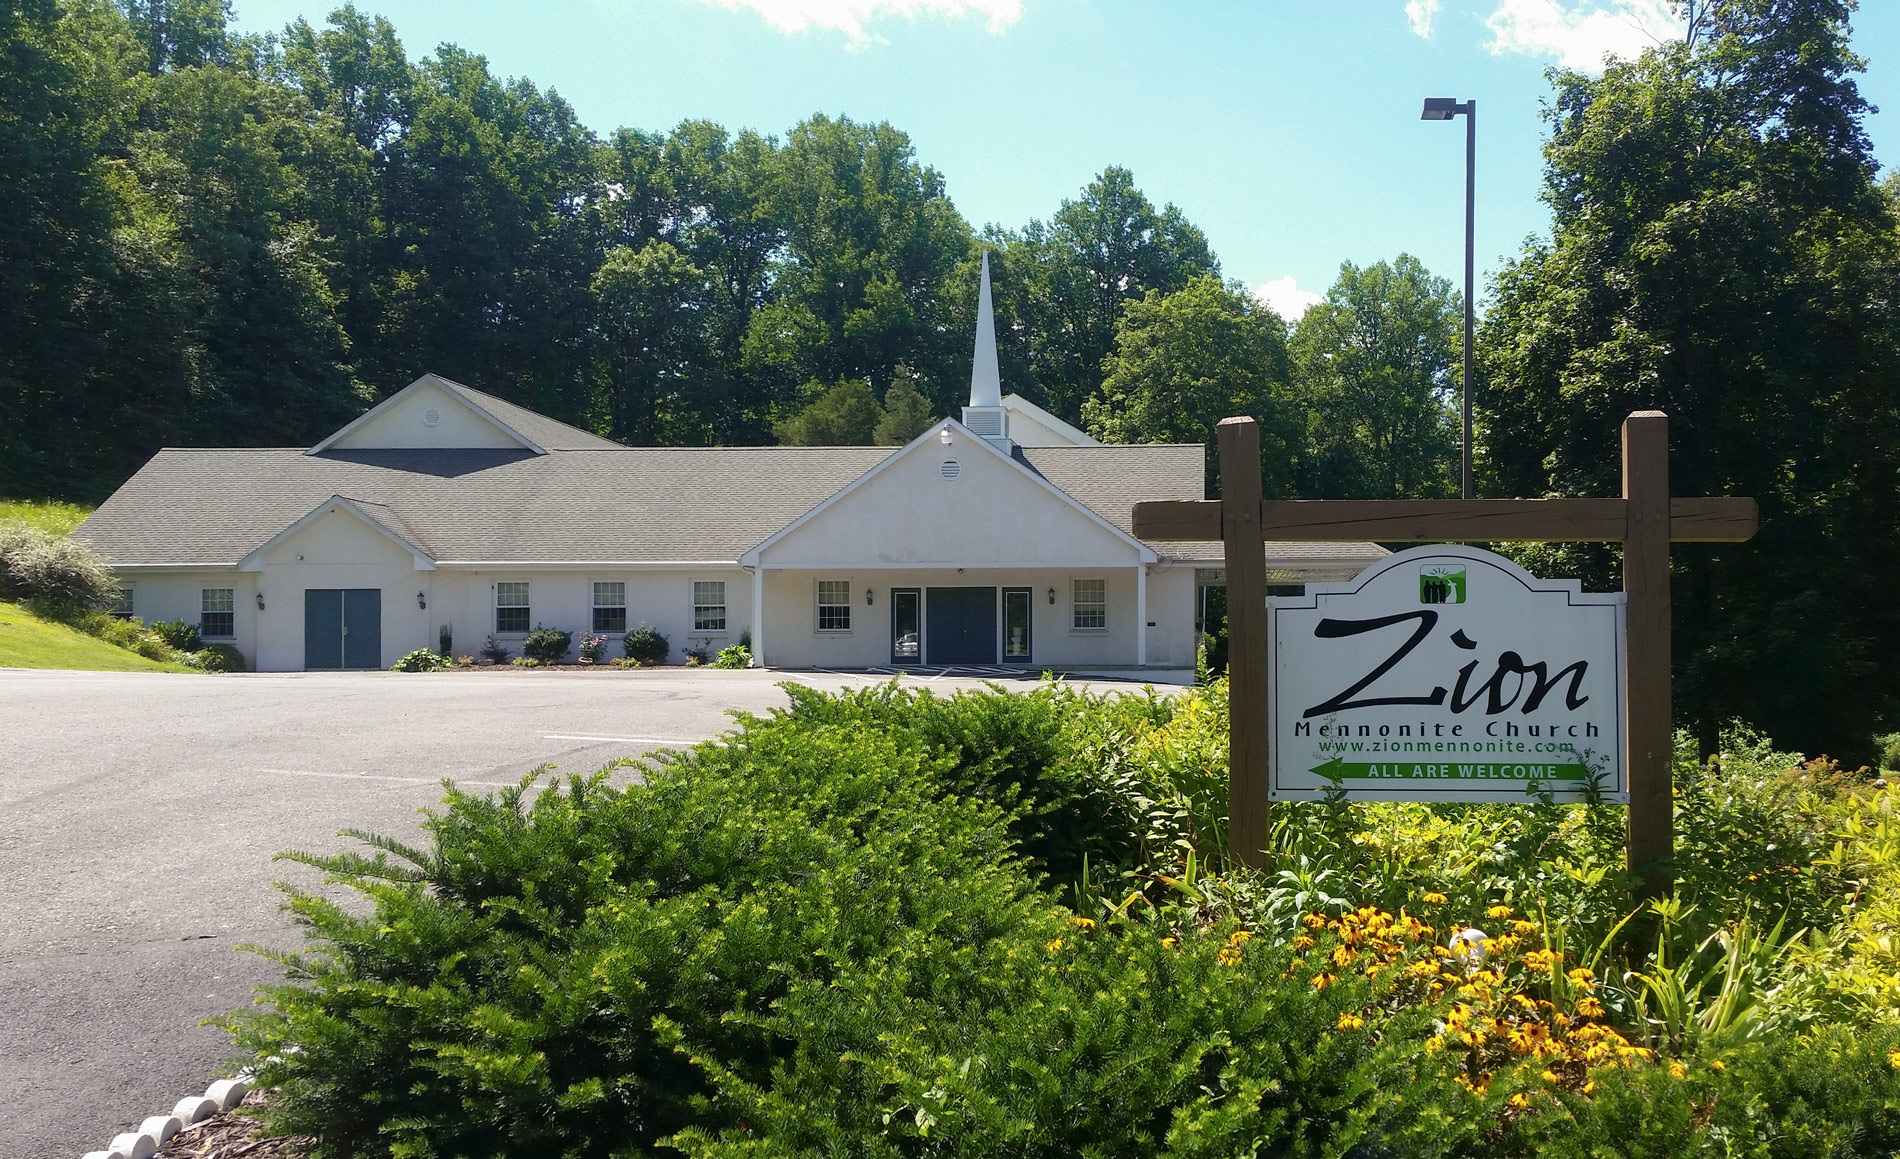 Zion Mennonite Church - Summer 2016